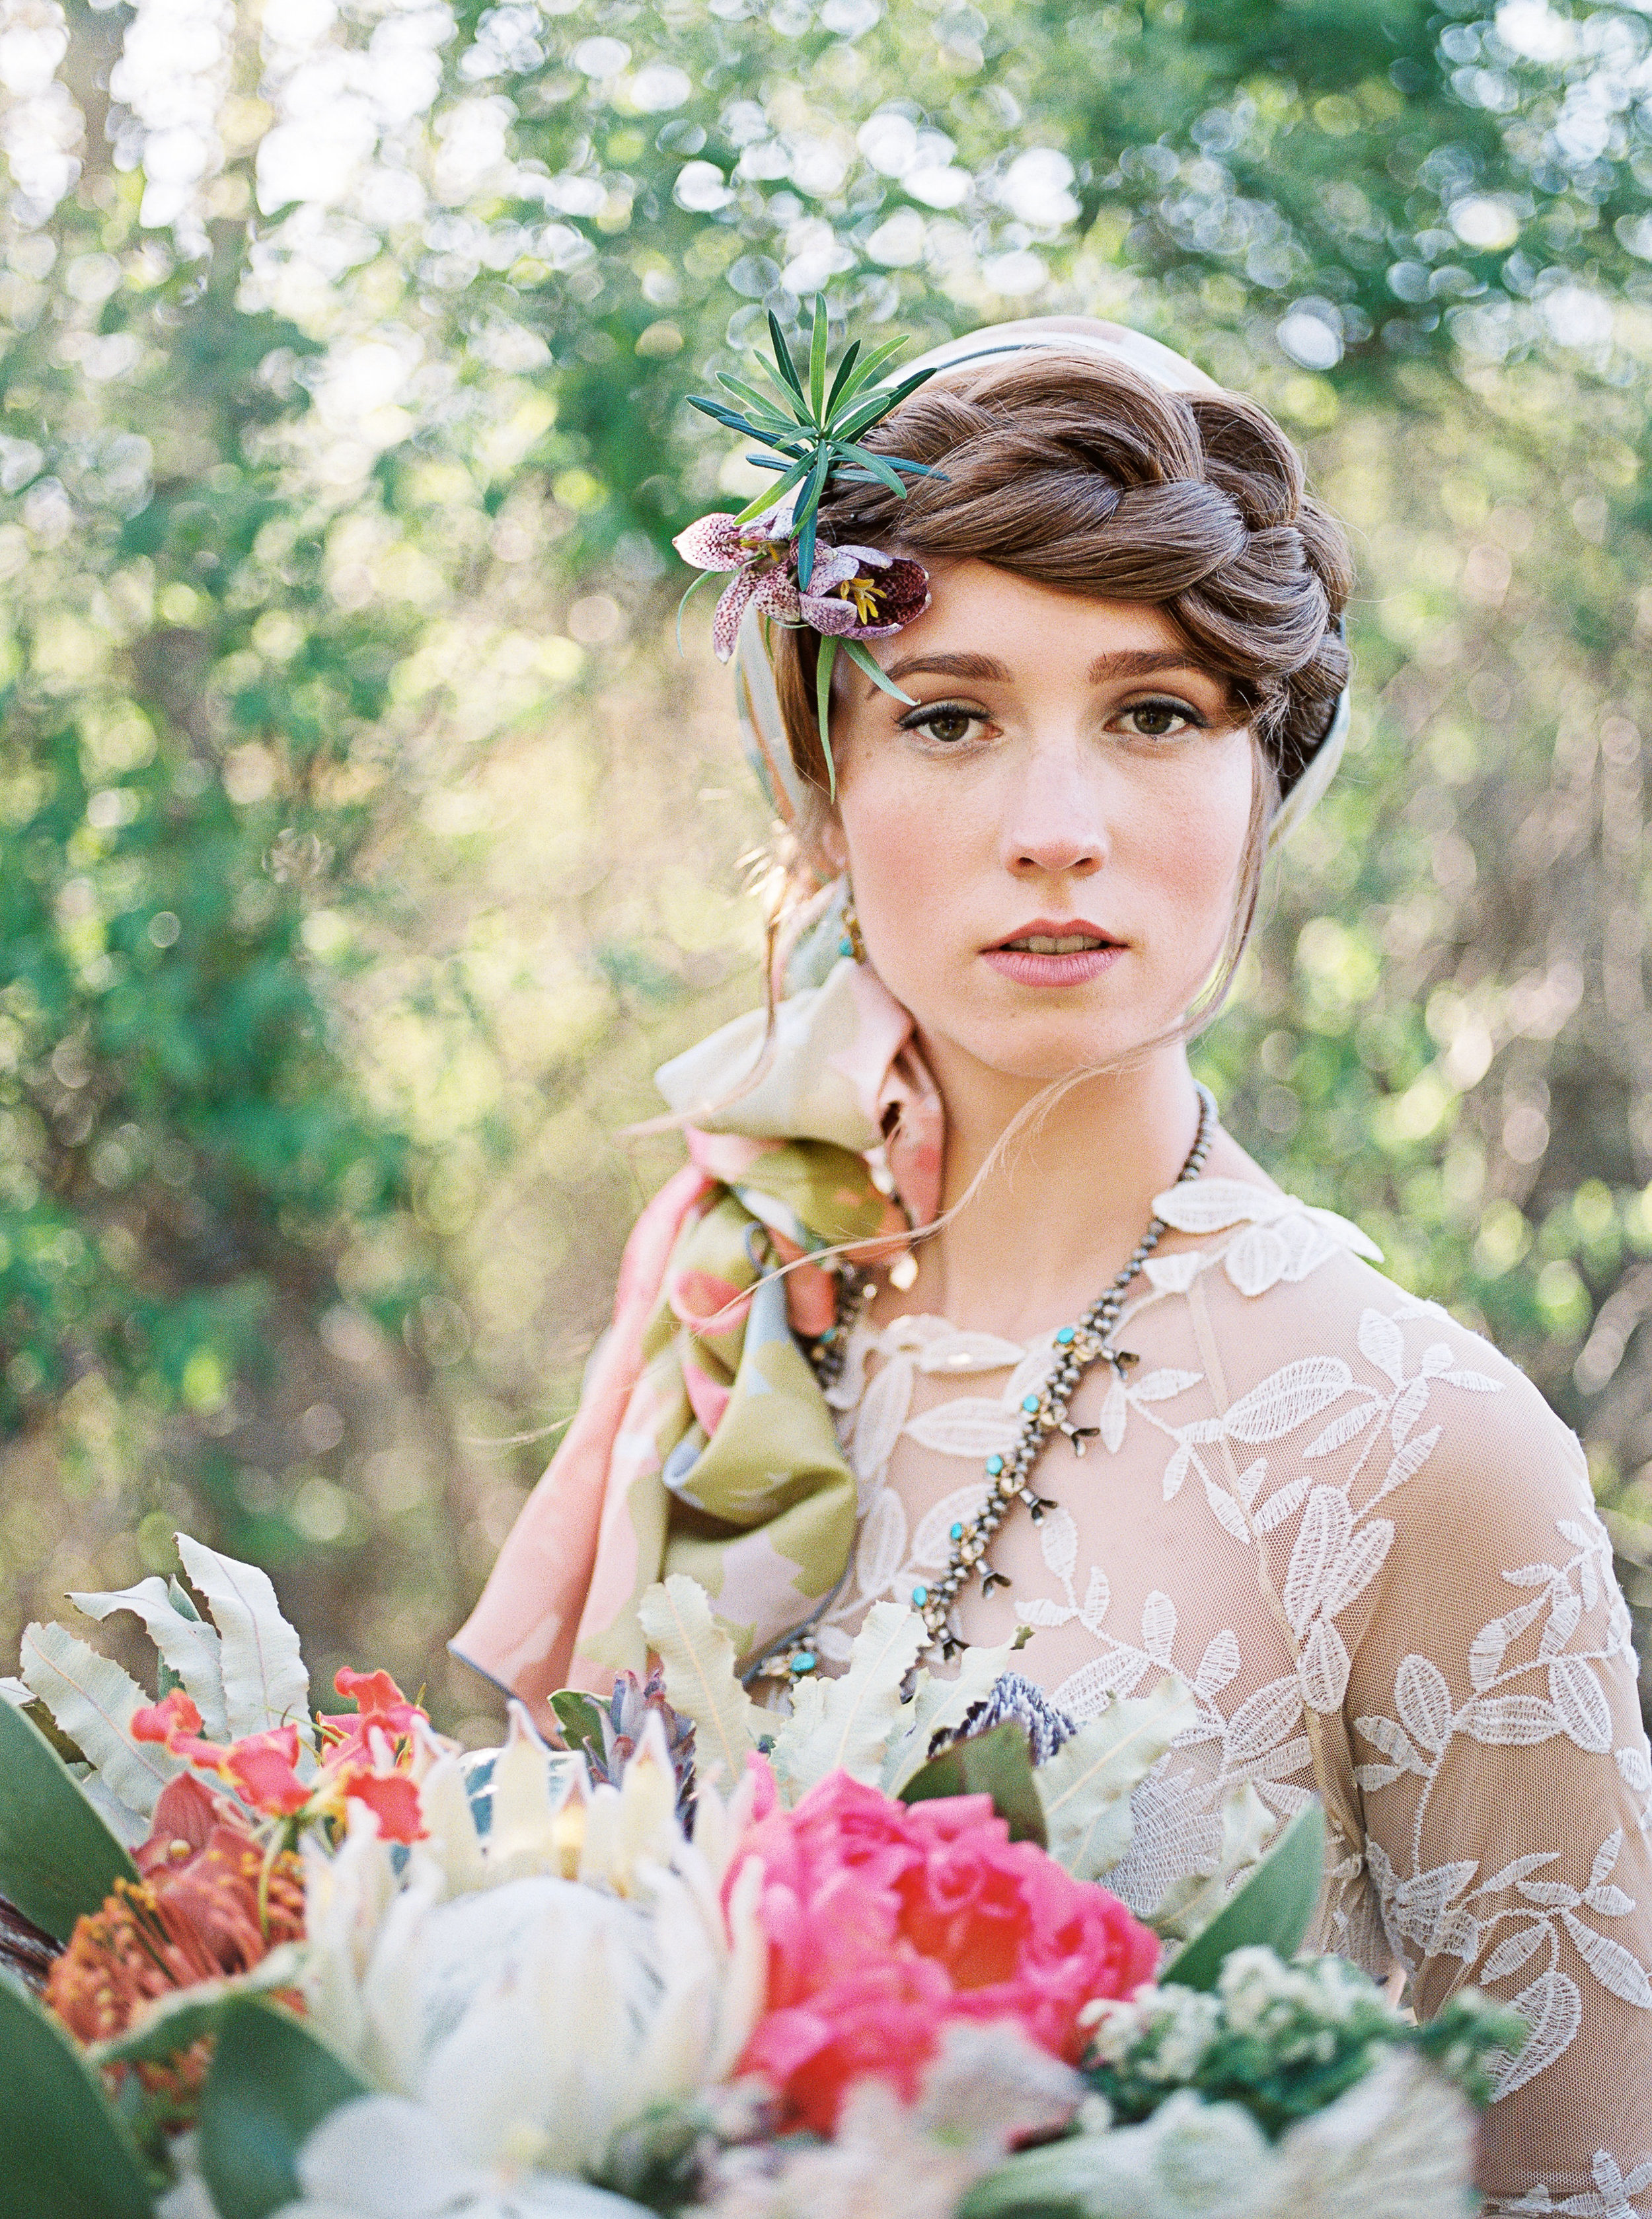 Alexandra-Elise-Photography-Louelle Deisgn Studio Stacy K Floral Bridal Scarf Silk Accessories Boho Wedding.jpg